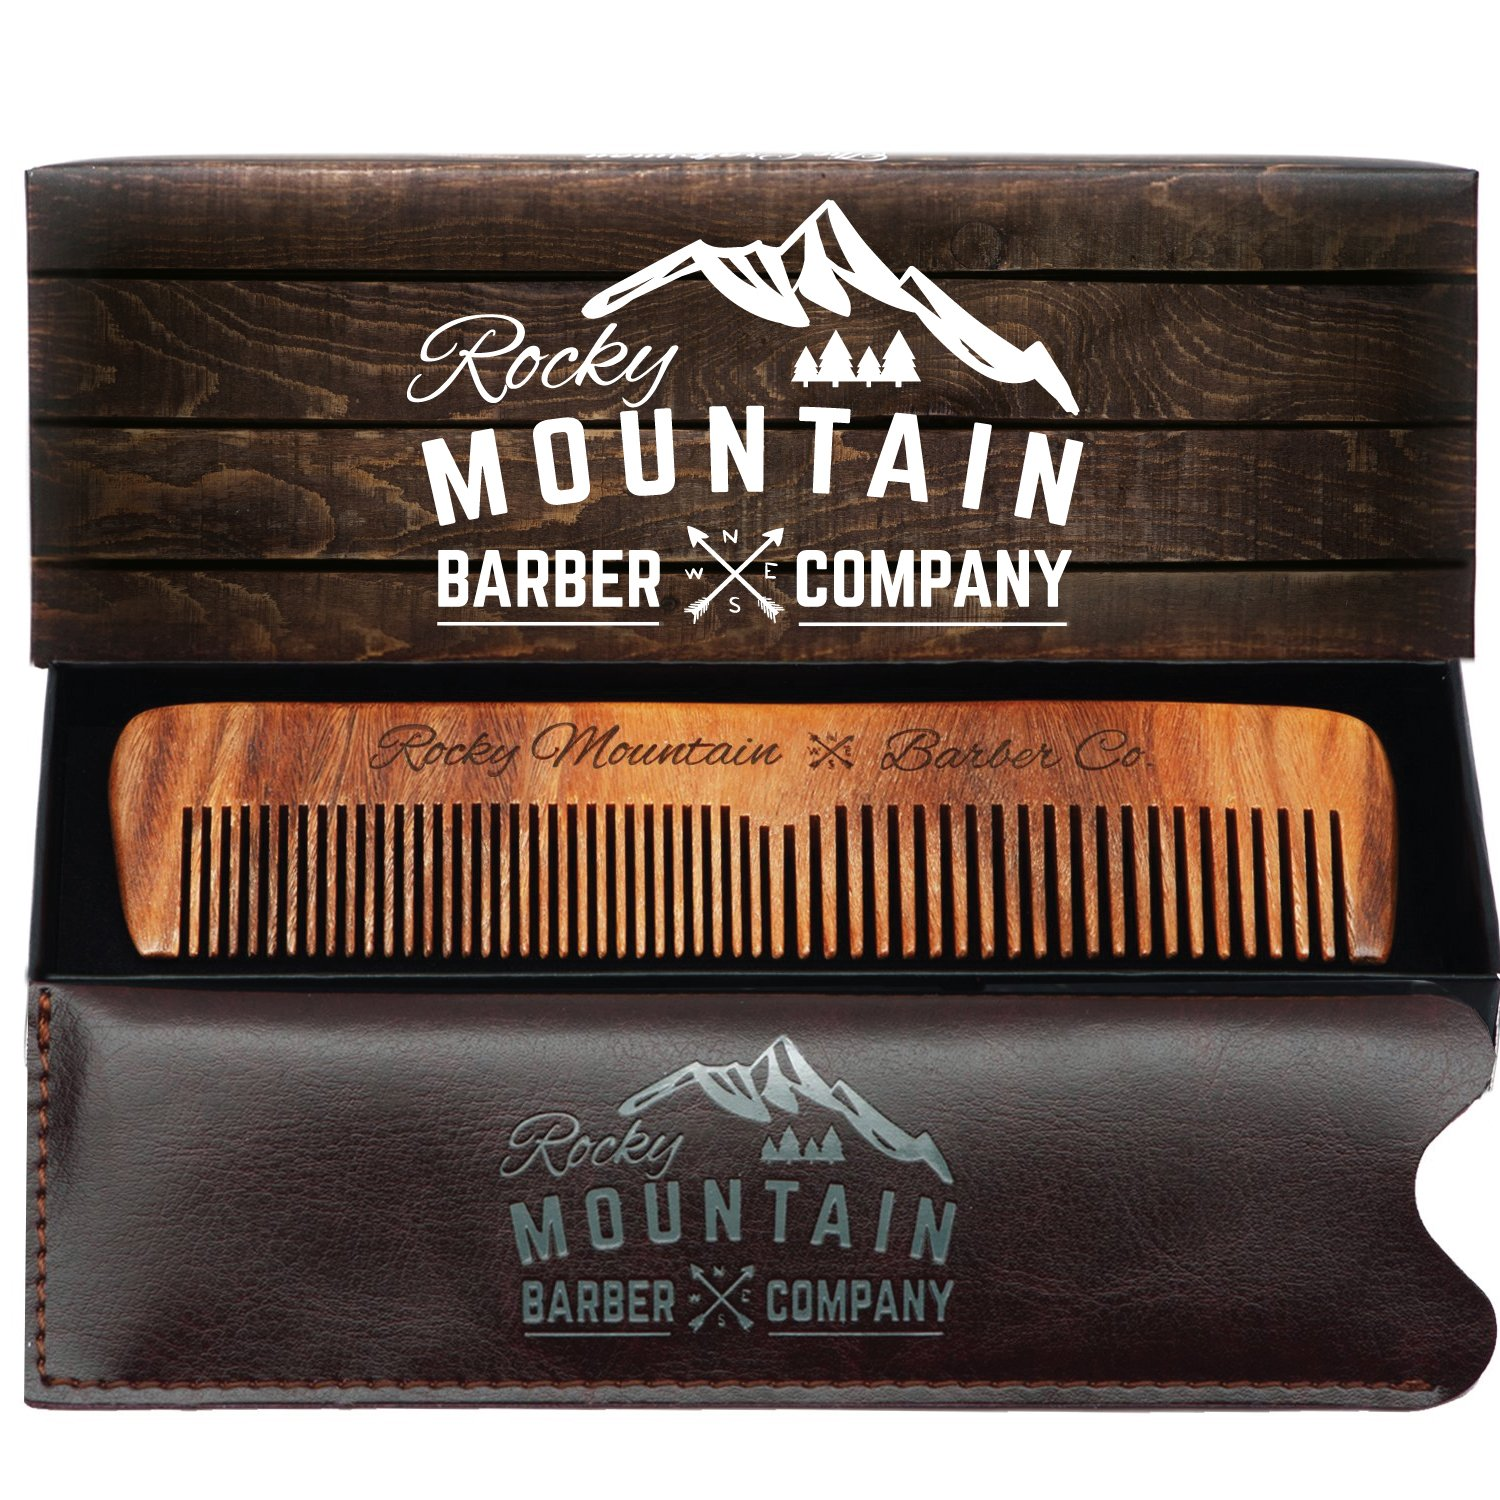 Hair Comb - Wood with Anti-Static & No Snag with Fine and Medium Tooth for Head Hair, Beard, Mustache with Premium Carrying Pouch in Design in Gift Box by Rocky Mountain